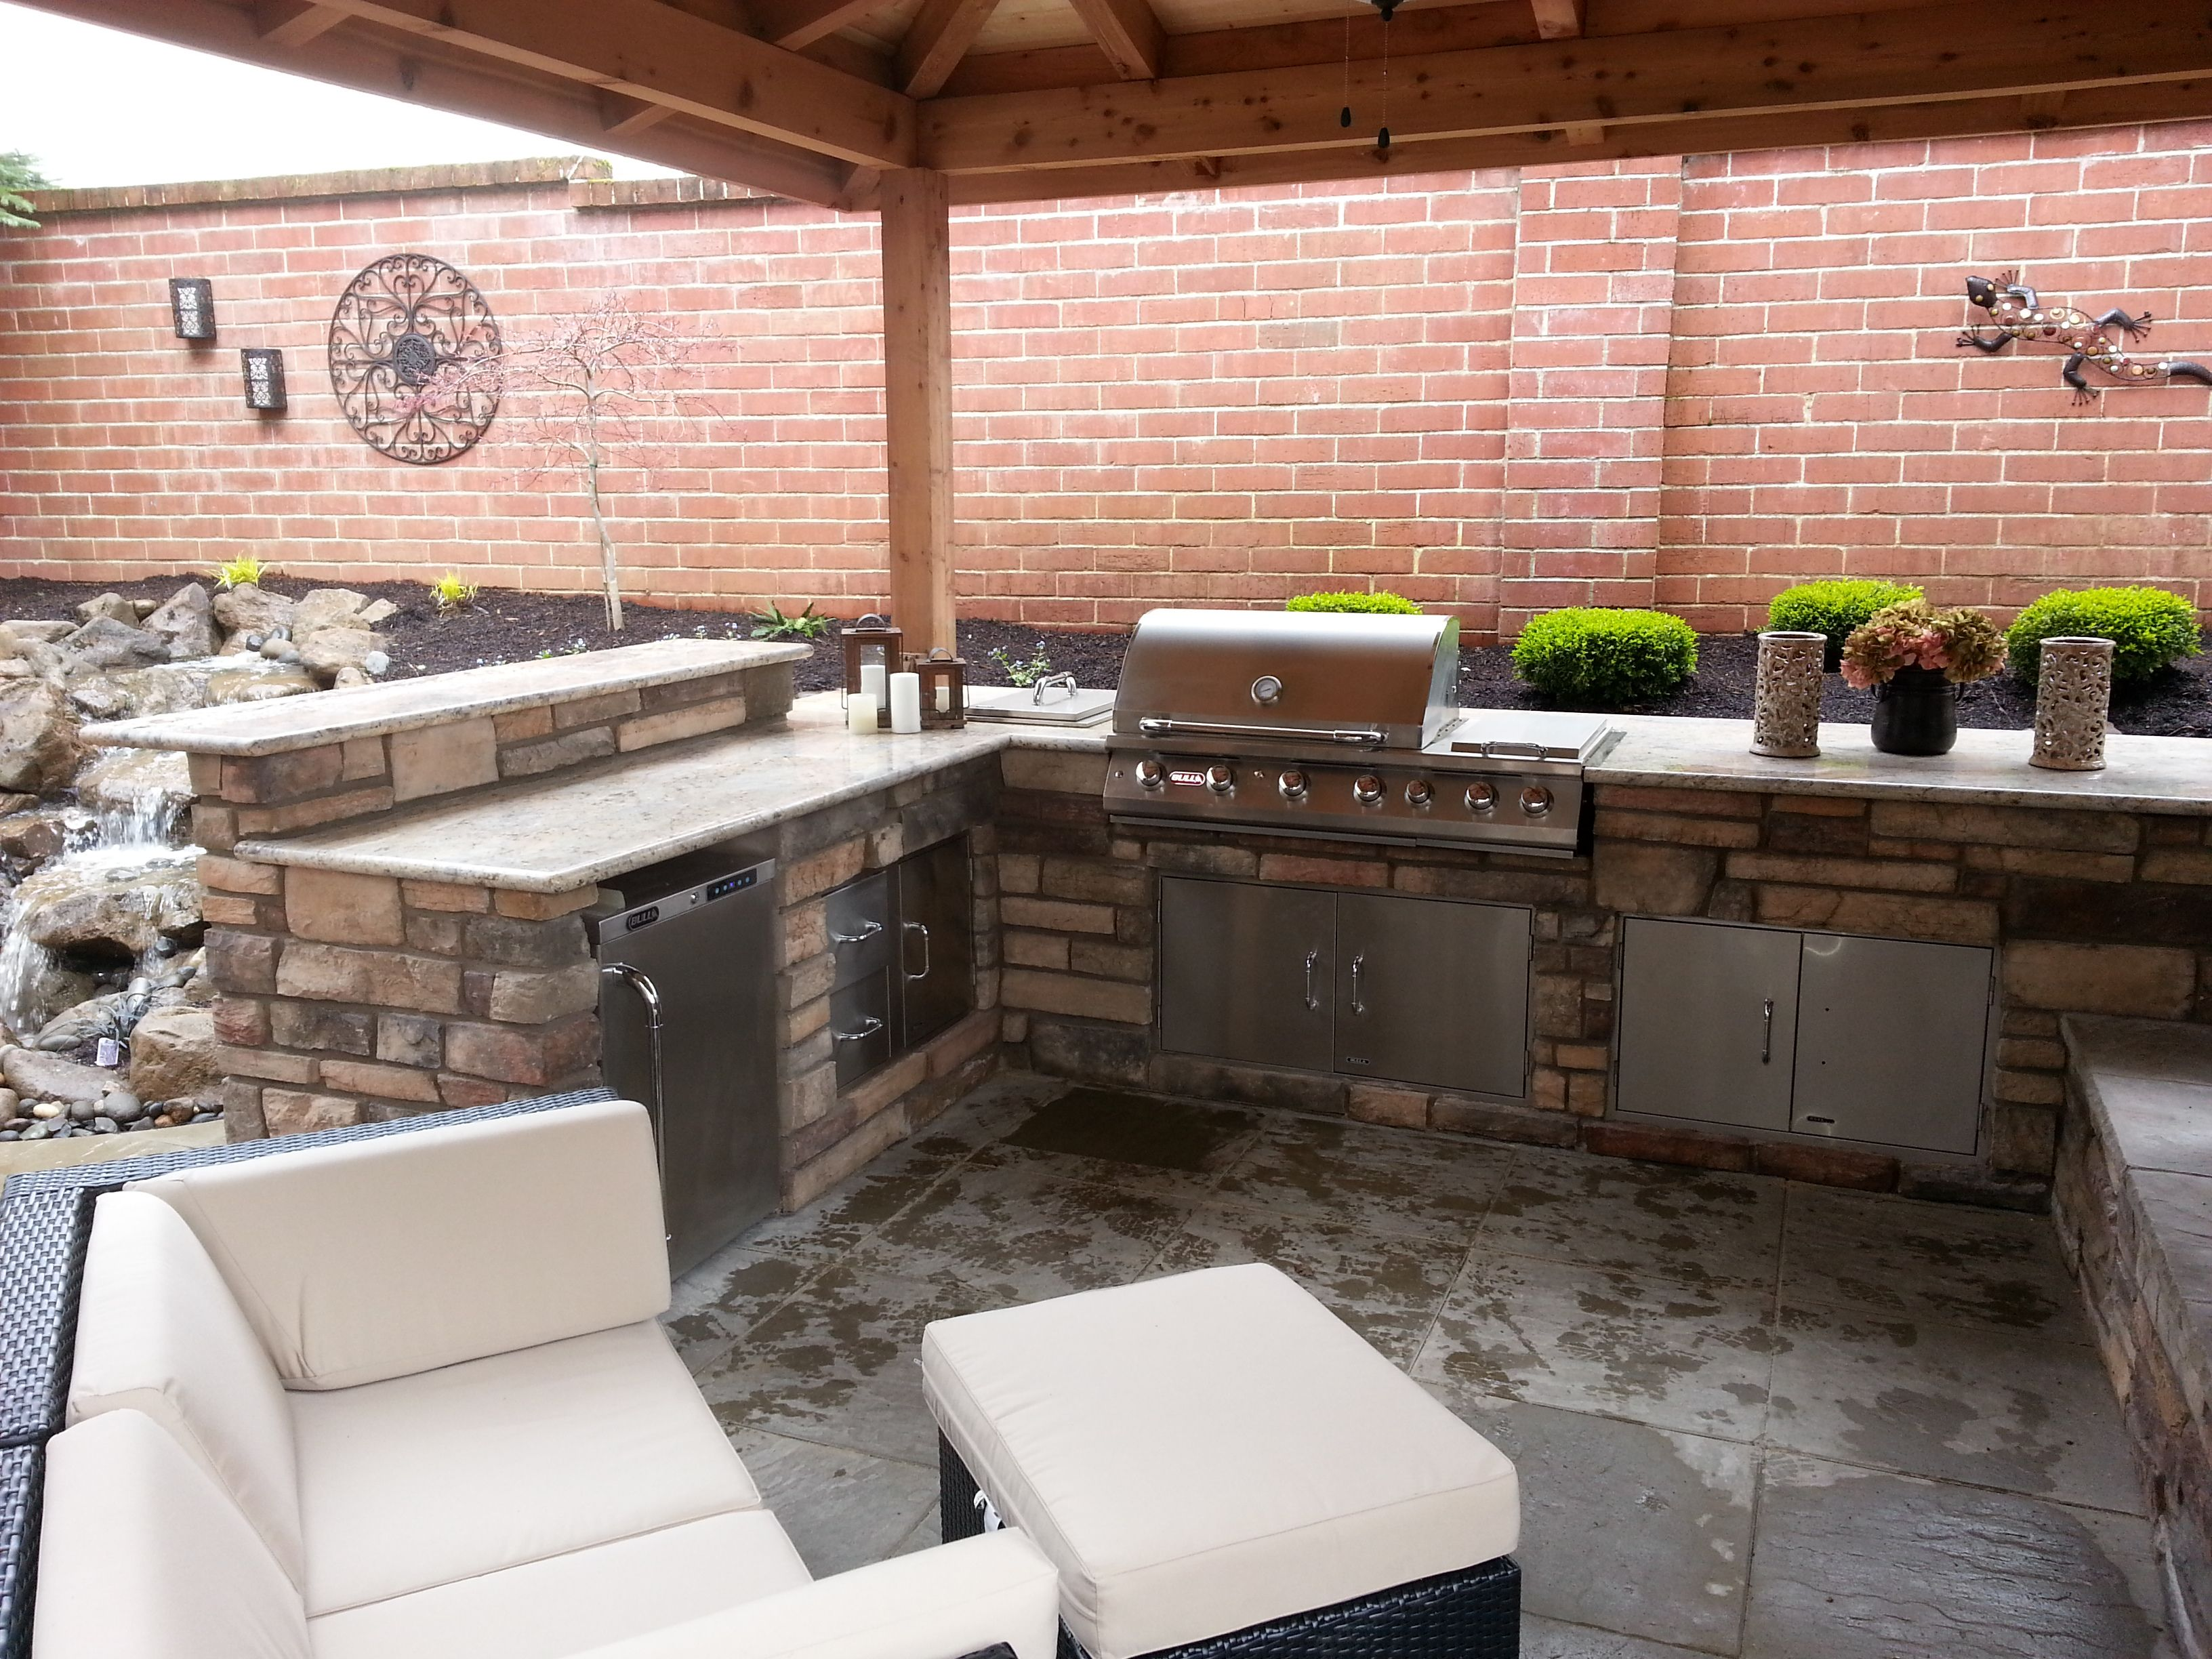 outdoor fireplace outdoor living outdoor kitchen covered patio